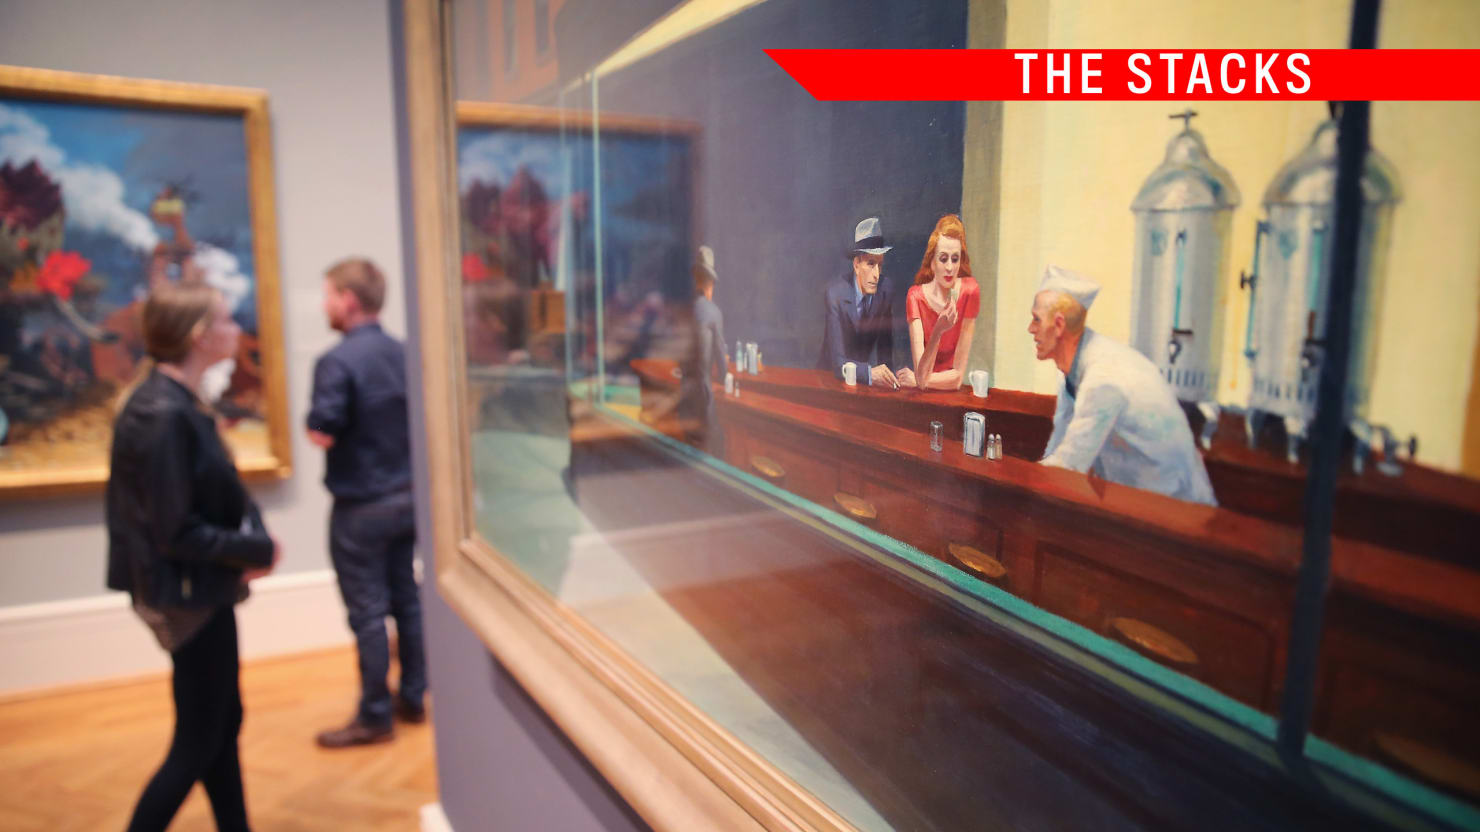 The Stacks: Edward Hopper's X-Ray Vision